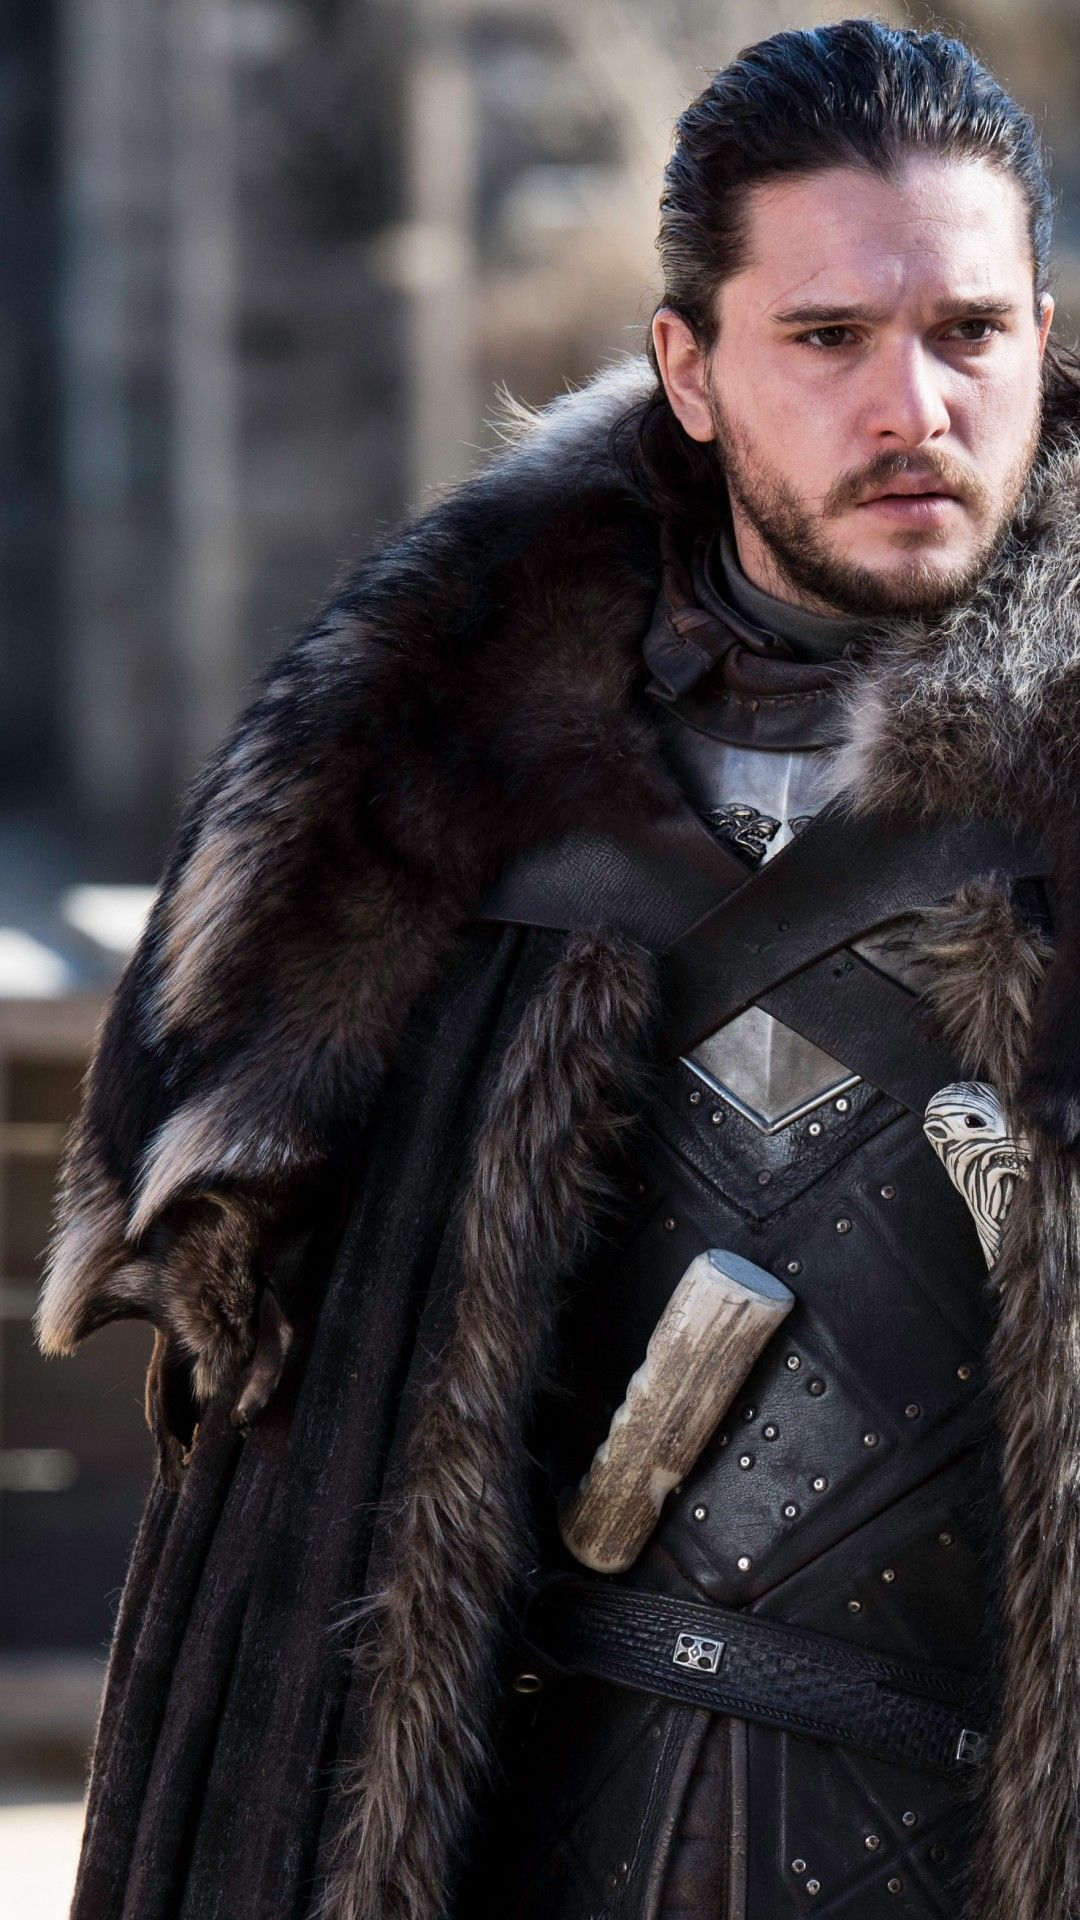 Jon Snow Game Of Thrones Wallpapers 1080p Hupages Download Iphone Wallpapers Jon Snow Android Wallpaper Snow